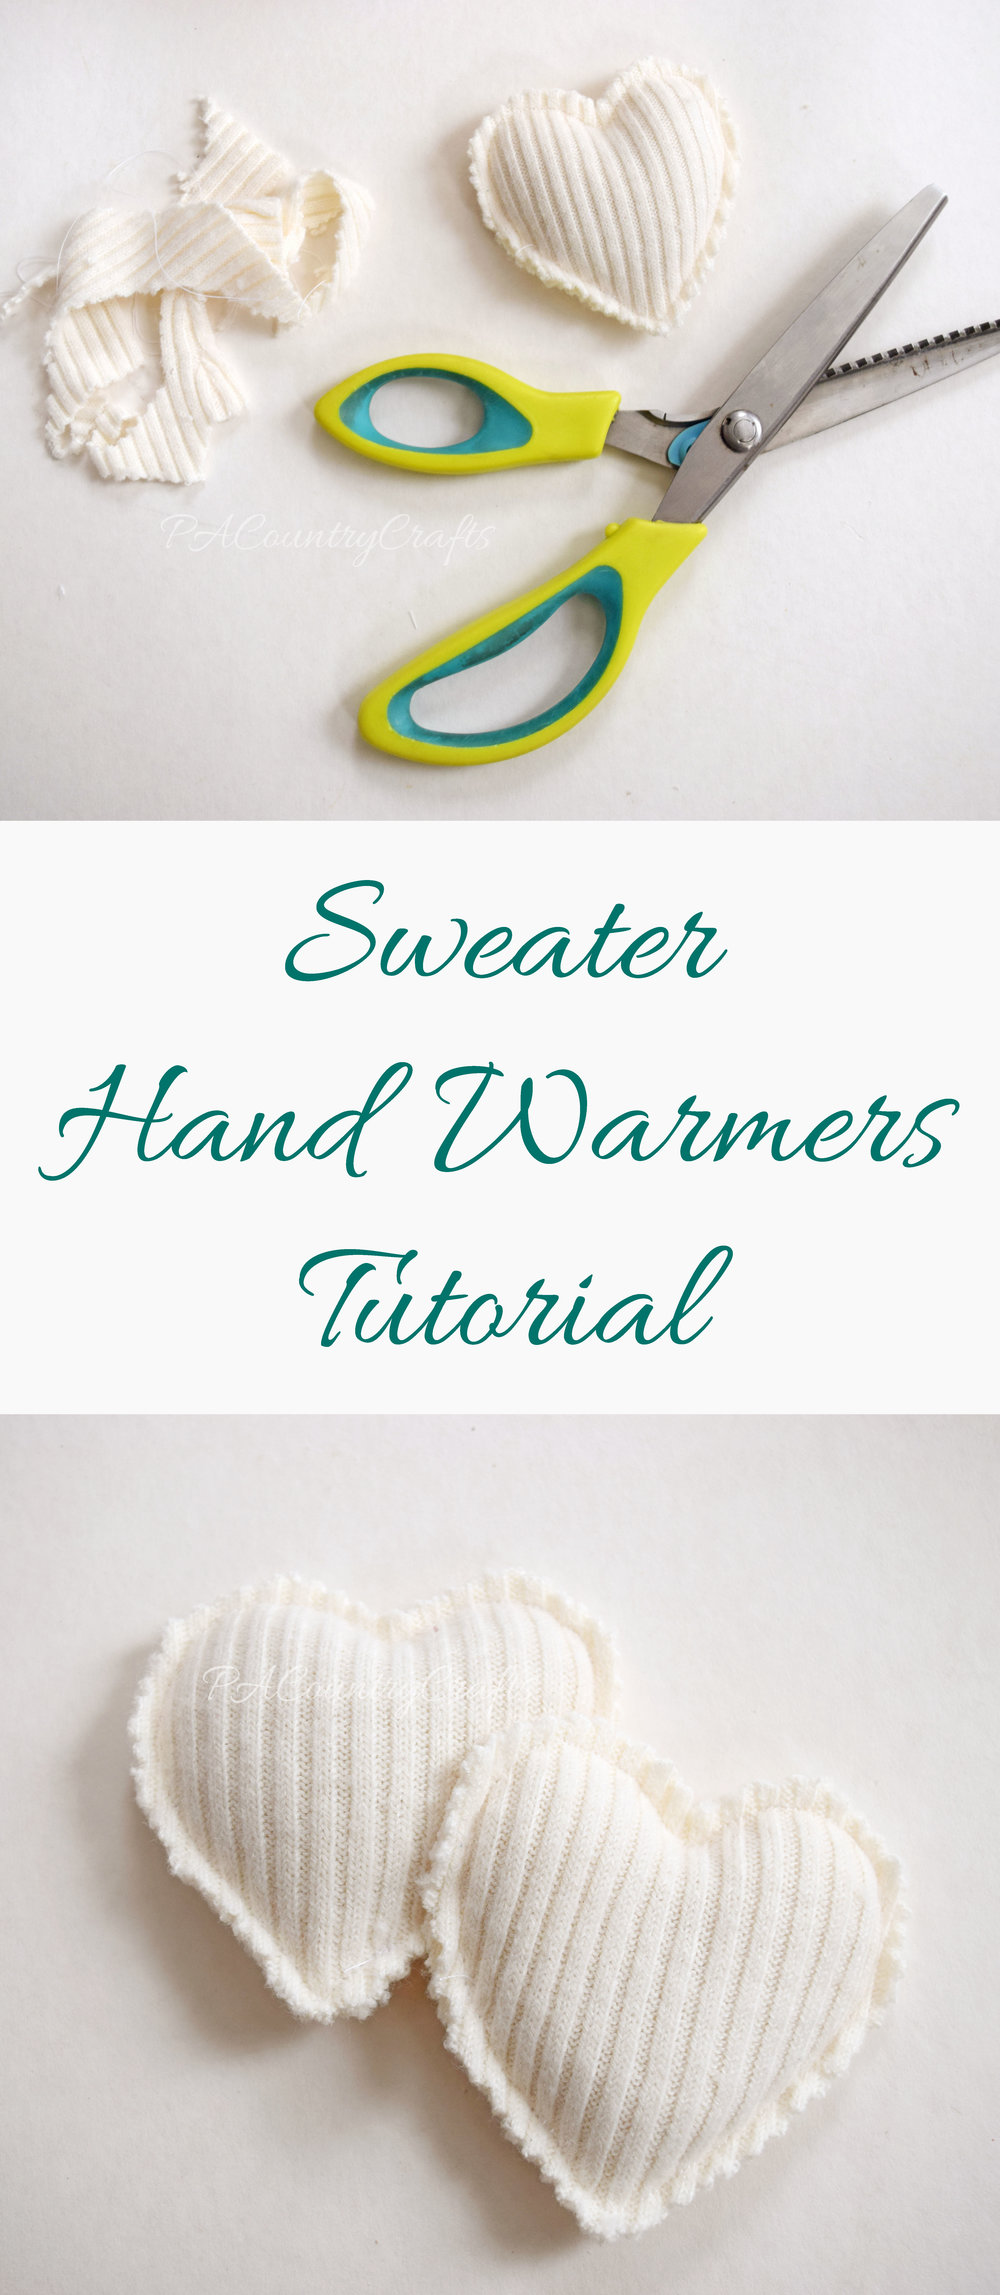 Upcycled Sweater Hand Warmers Tutorial